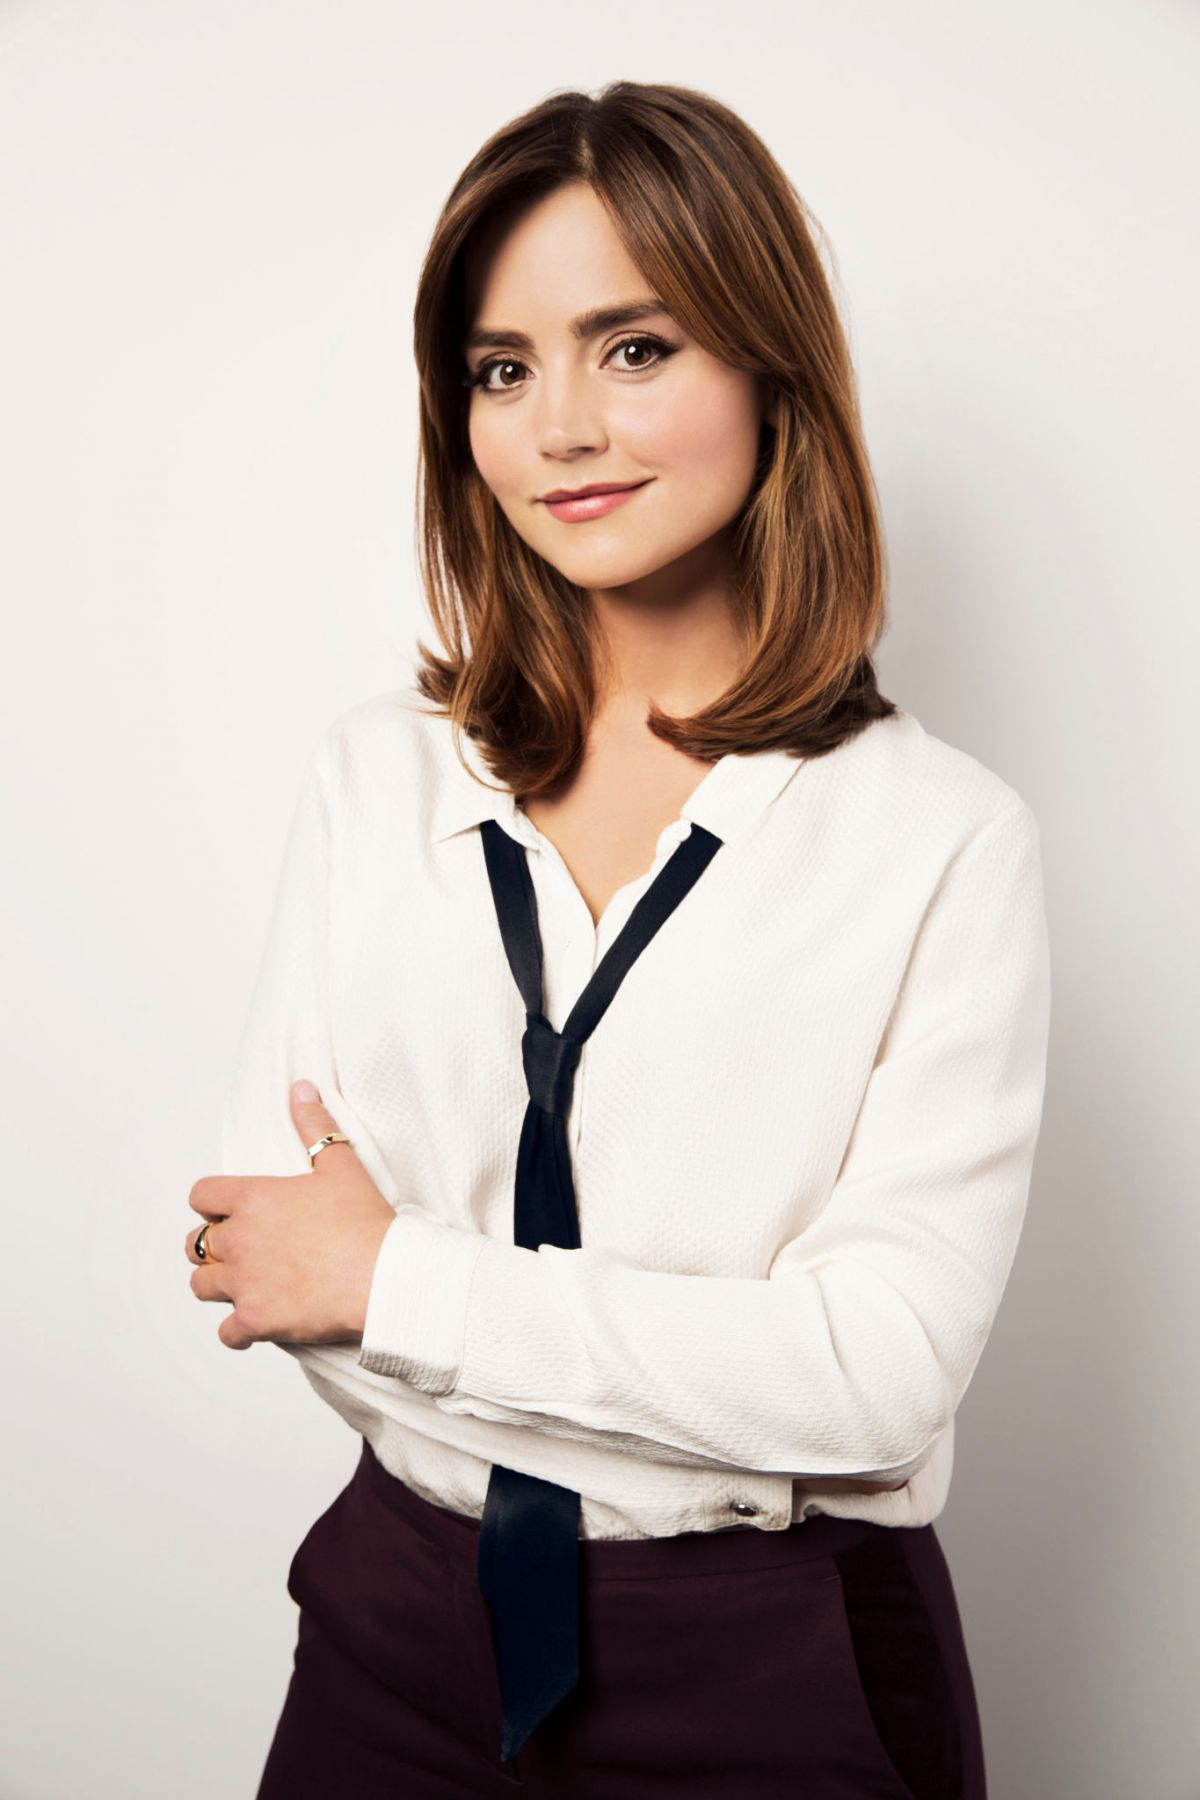 Pics Jenna-Louise Coleman nude (68 photo), Sexy, Cleavage, Instagram, braless 2019